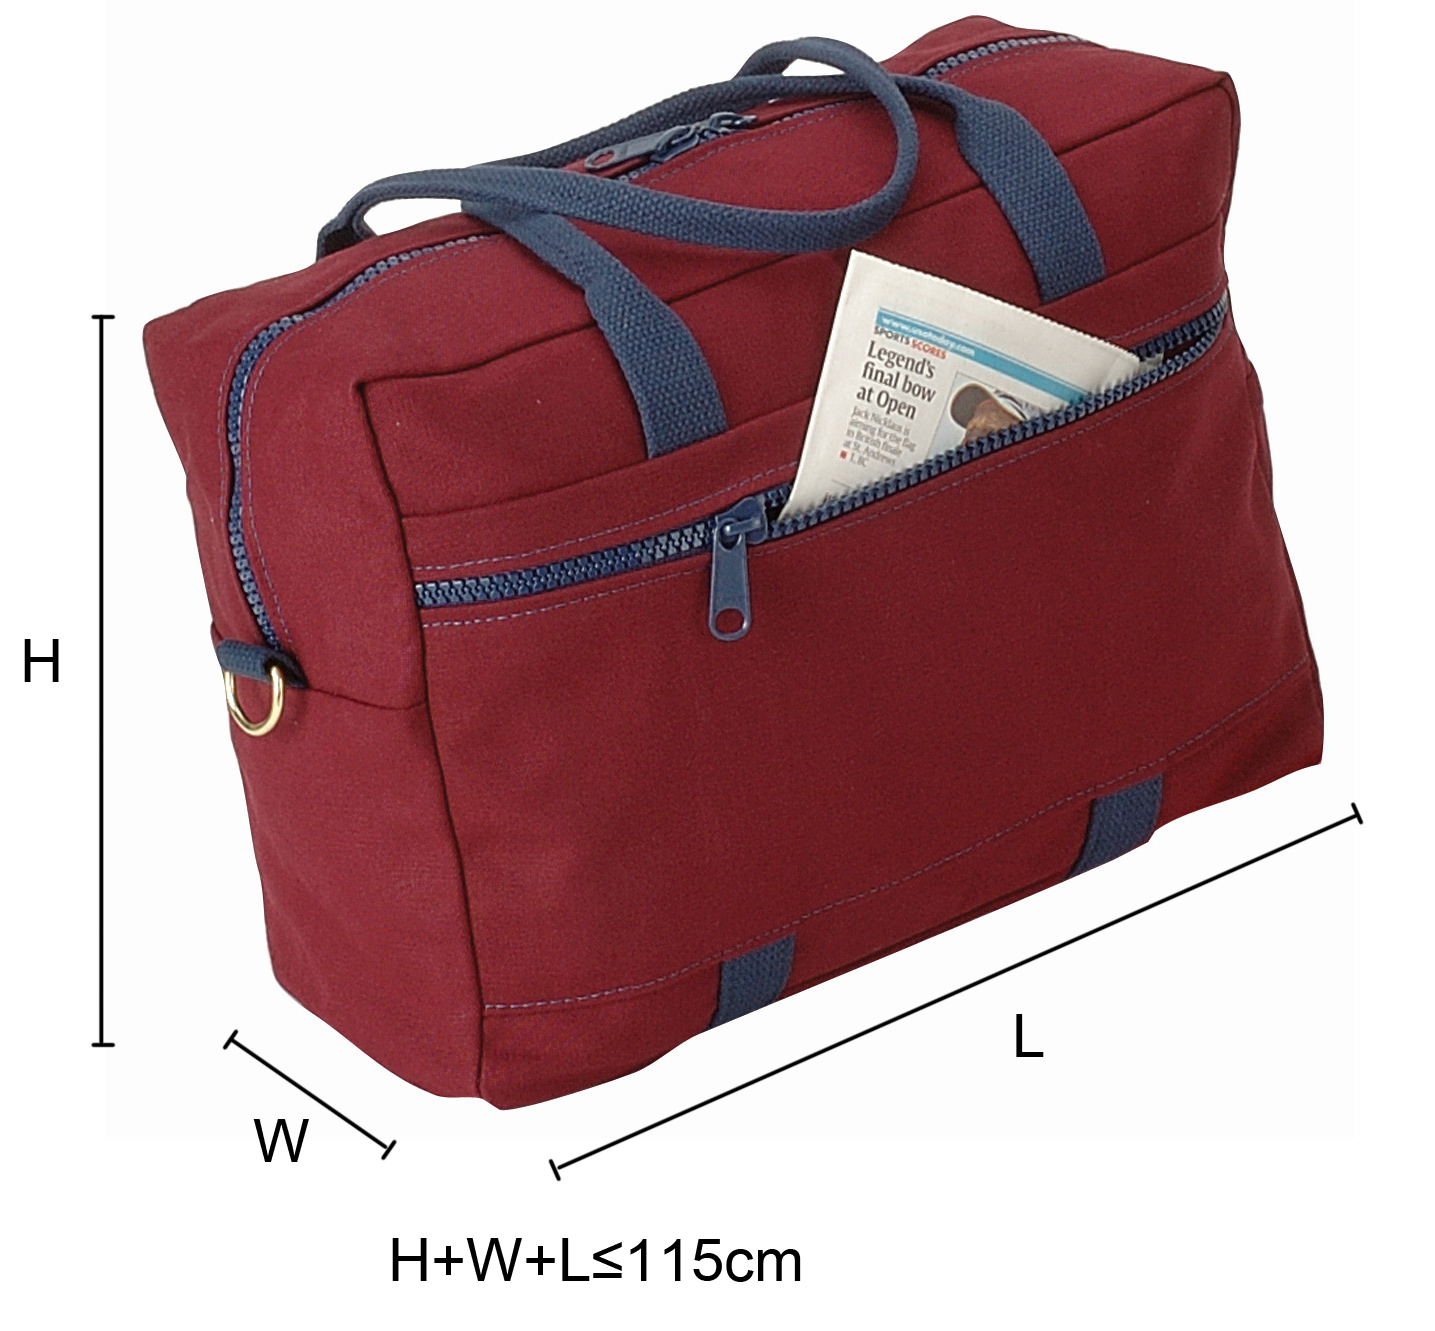 Maximum Size of Carry-on Baggage